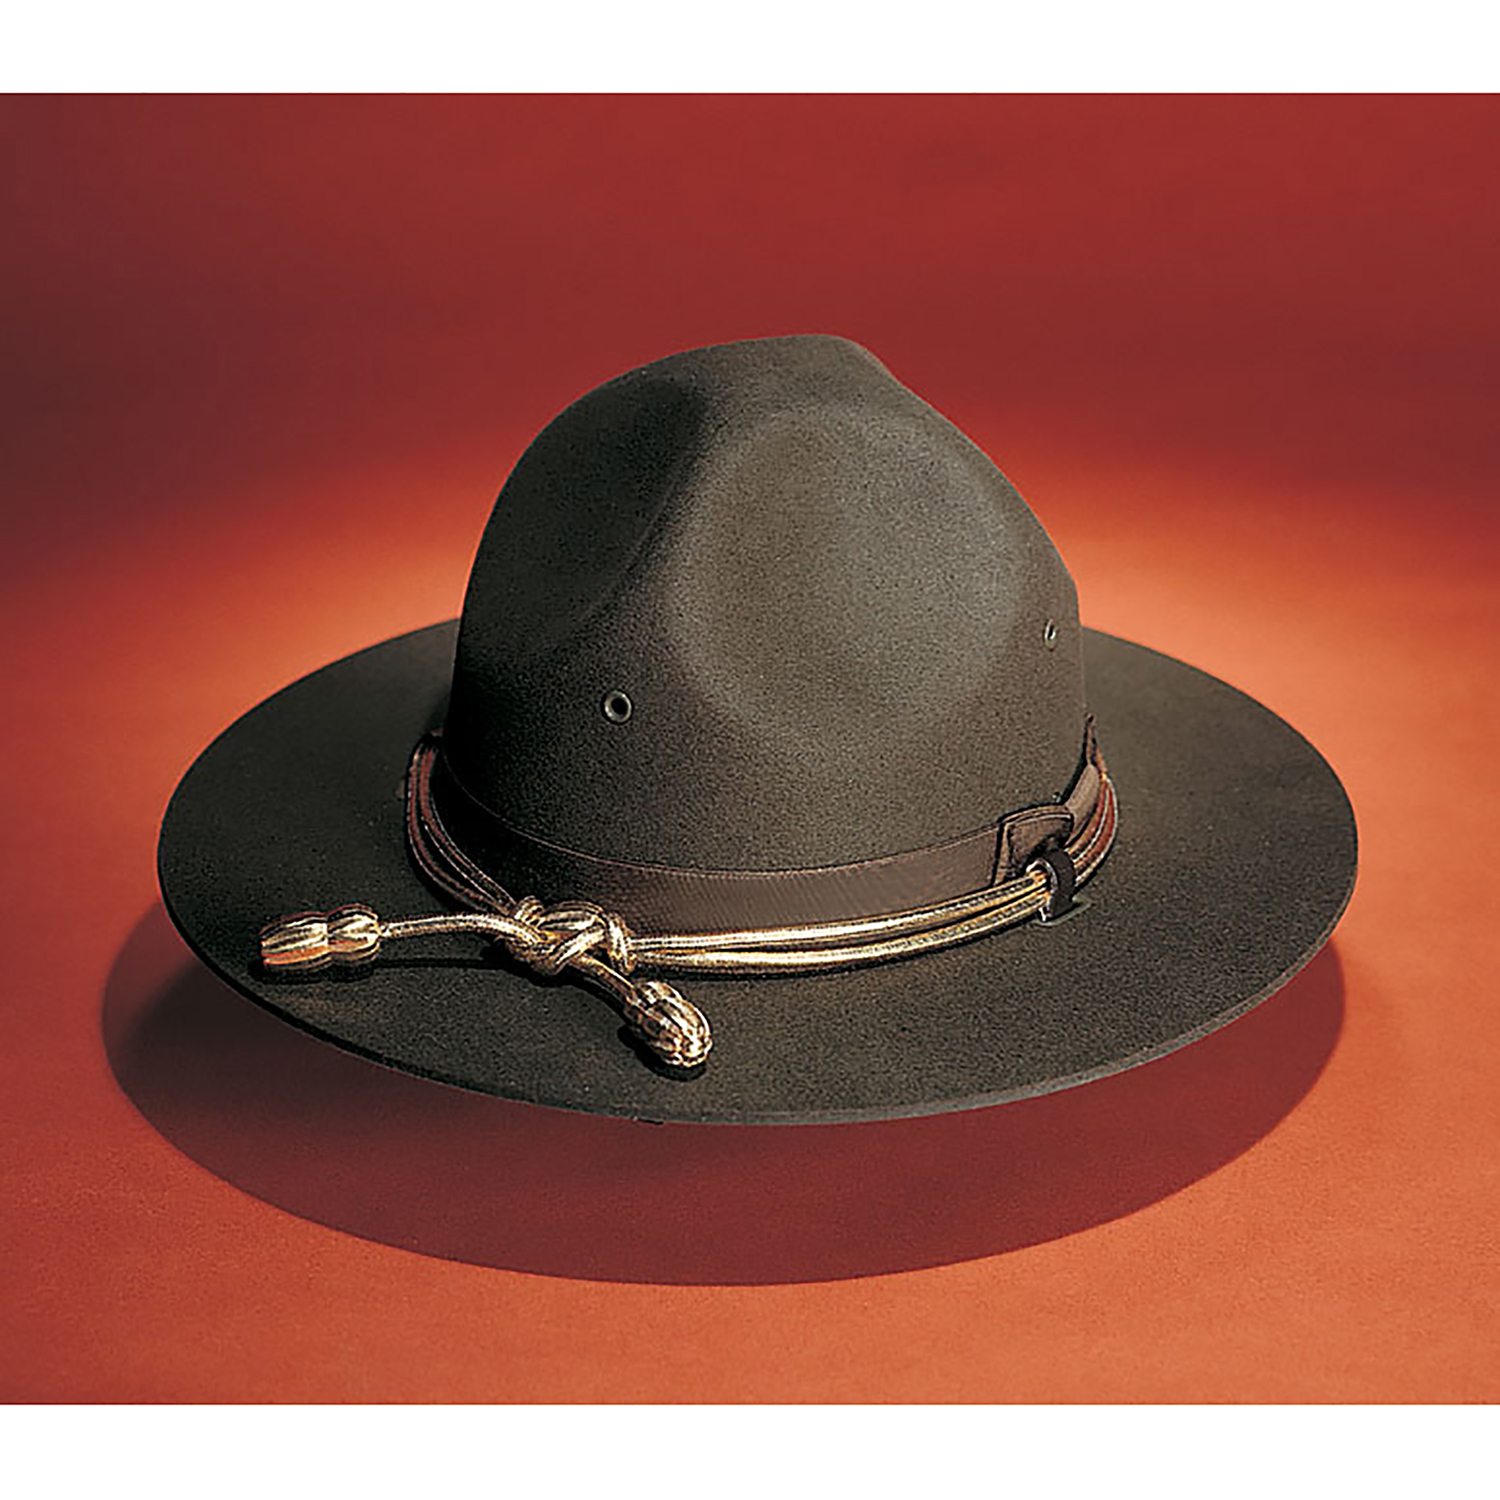 cfa820287 Galls Felt Campaign Hat with Adjustable Leather Chinstrap